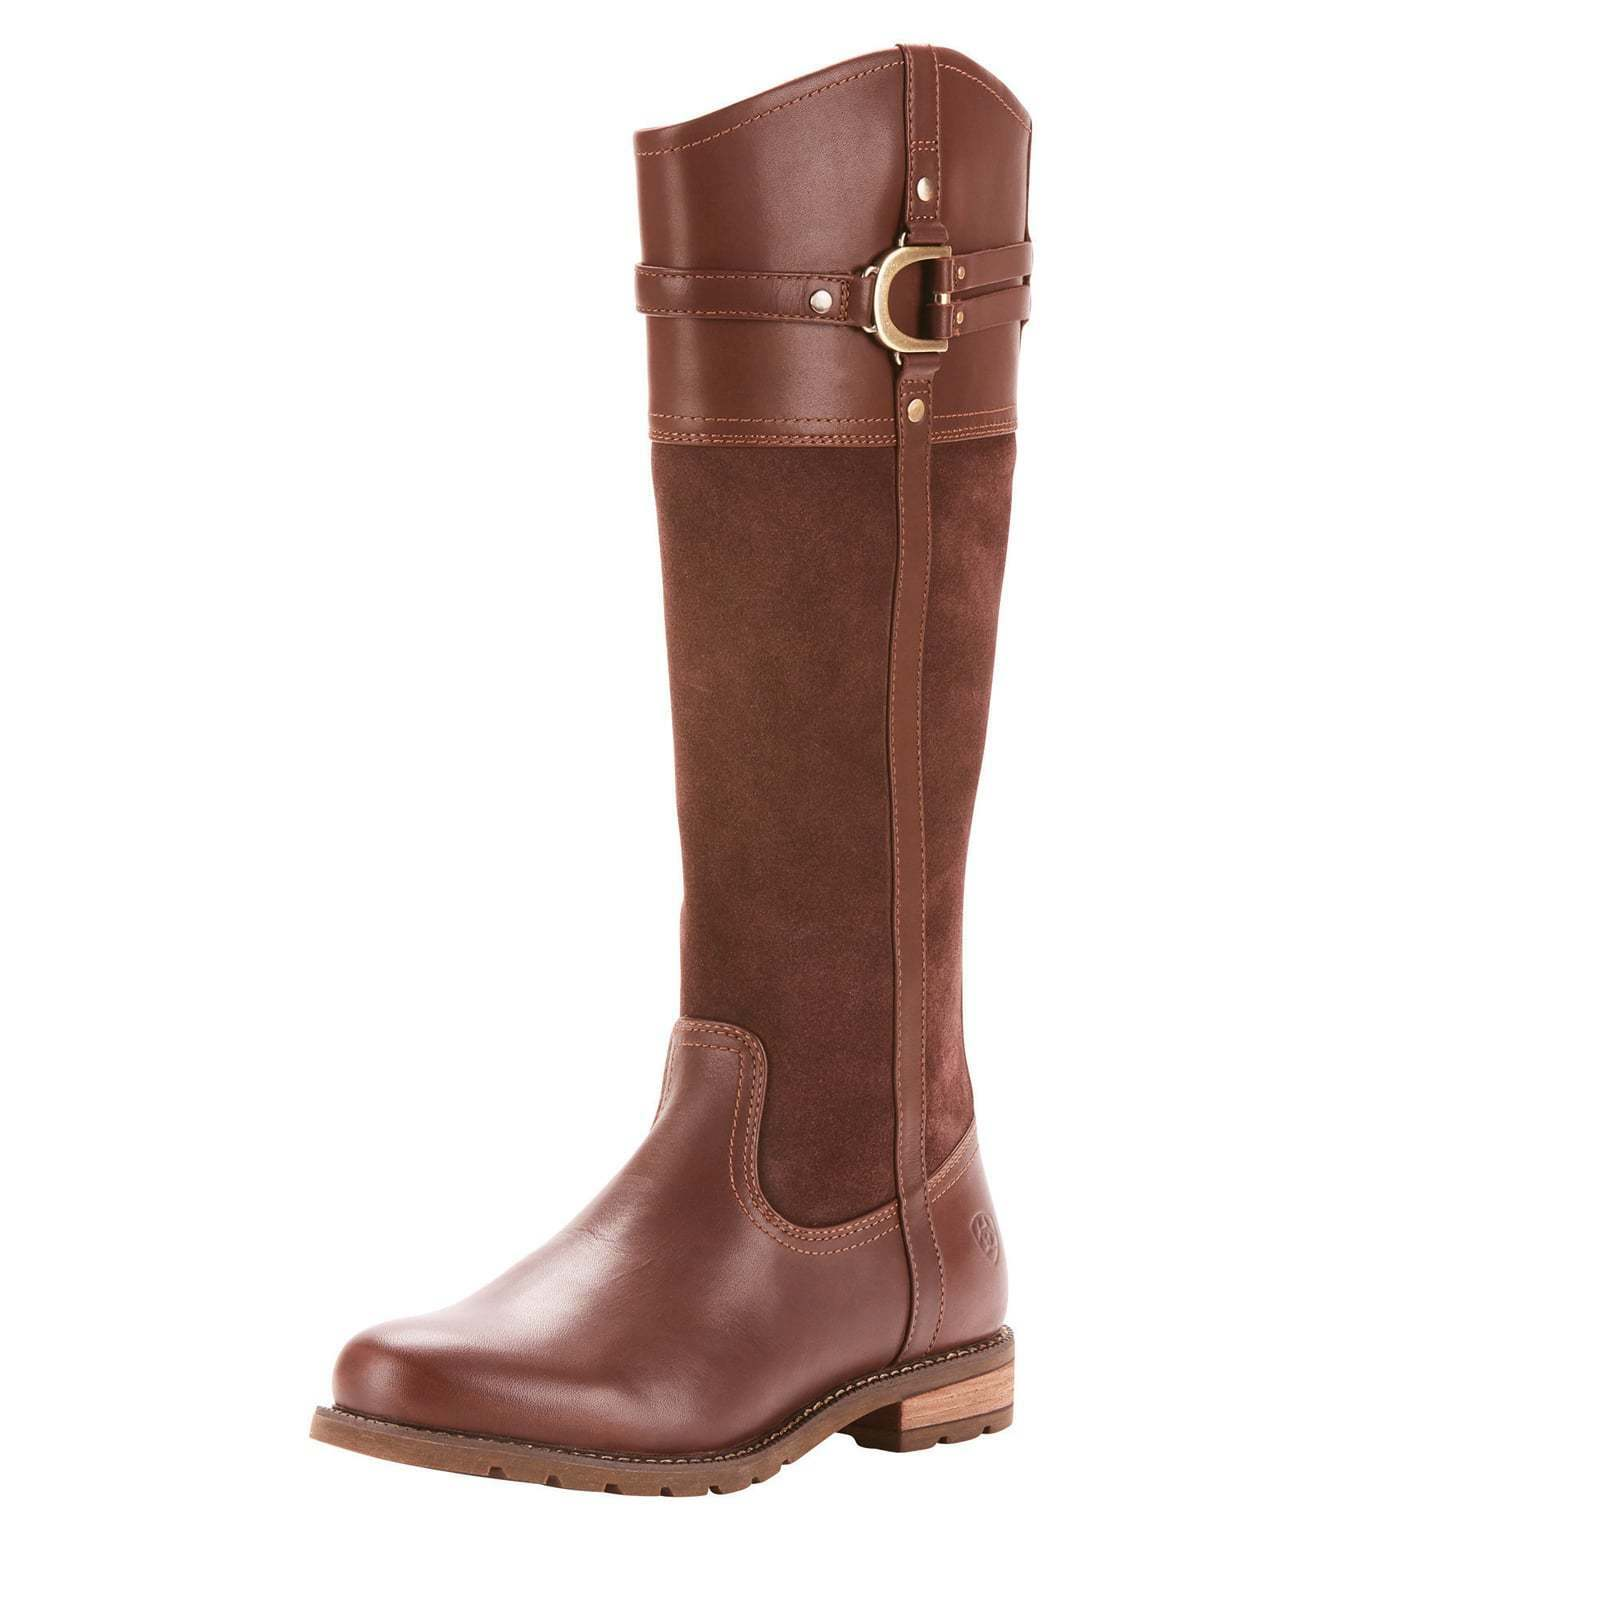 Ariat Loxley Leder H2O Leder Loxley Stiefel - Chocolate 971bc6